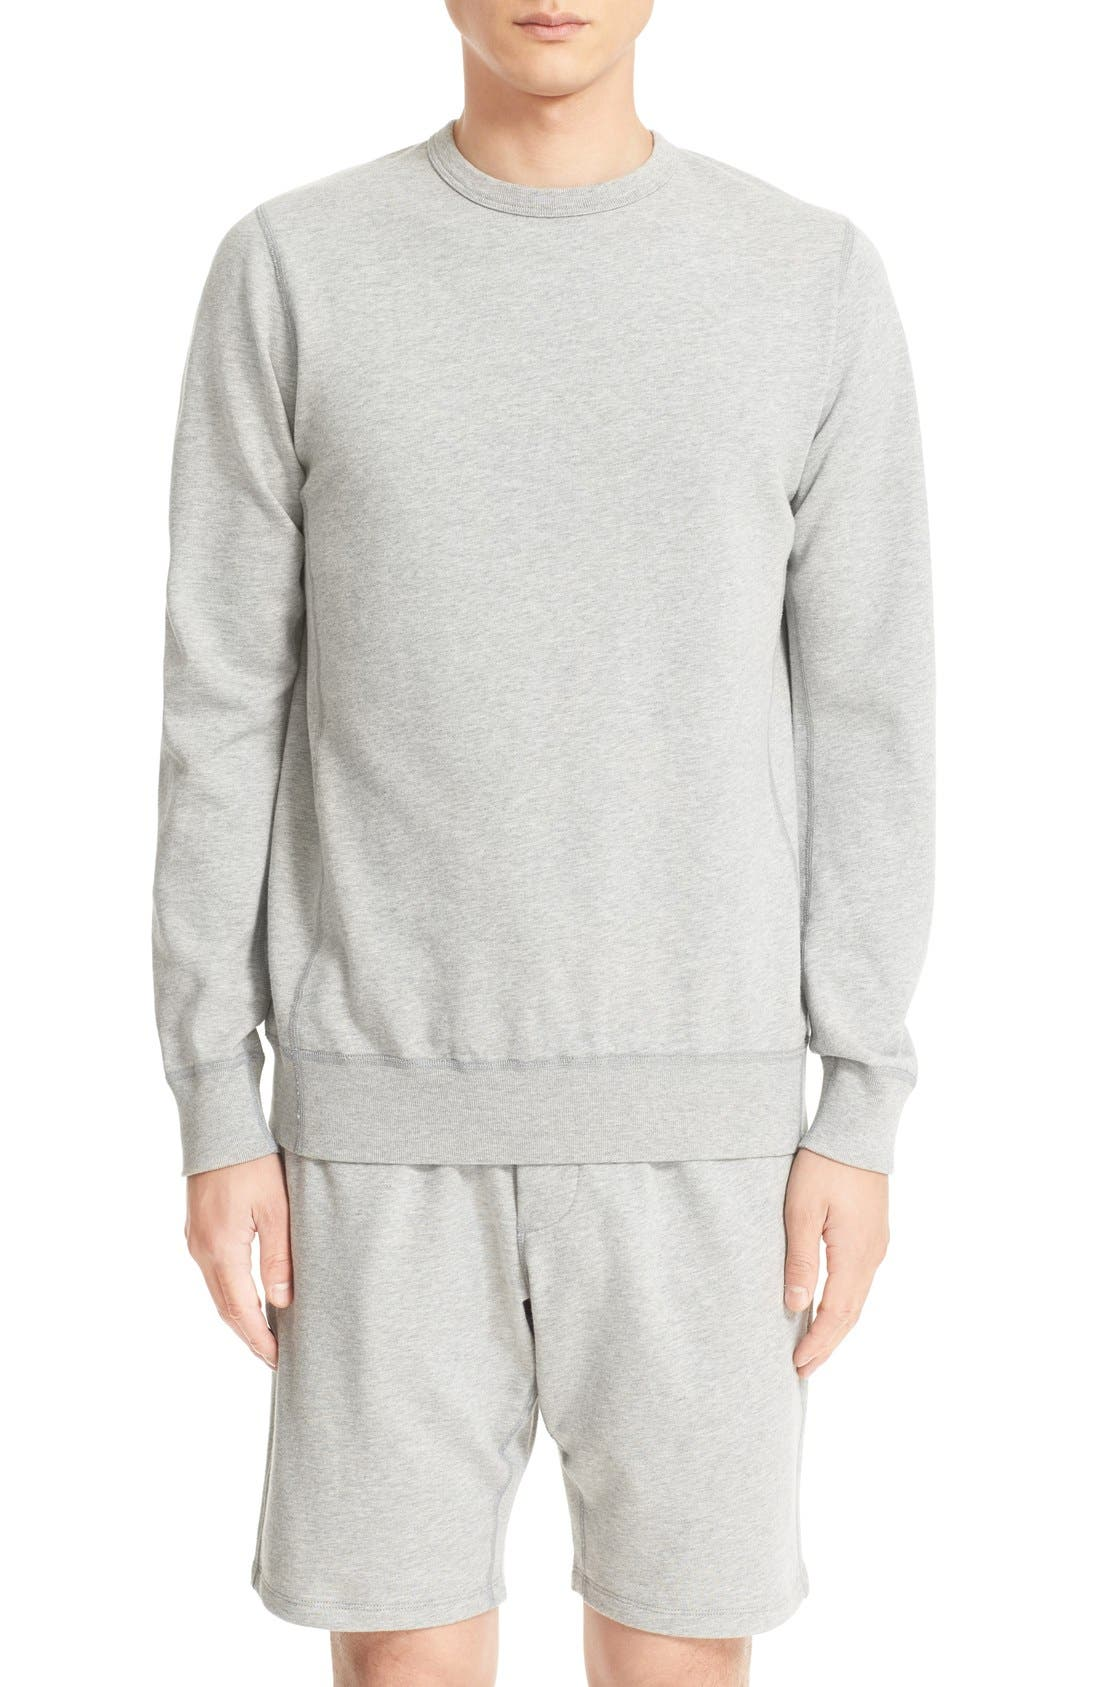 wings + horns French Terry Sweatshirt